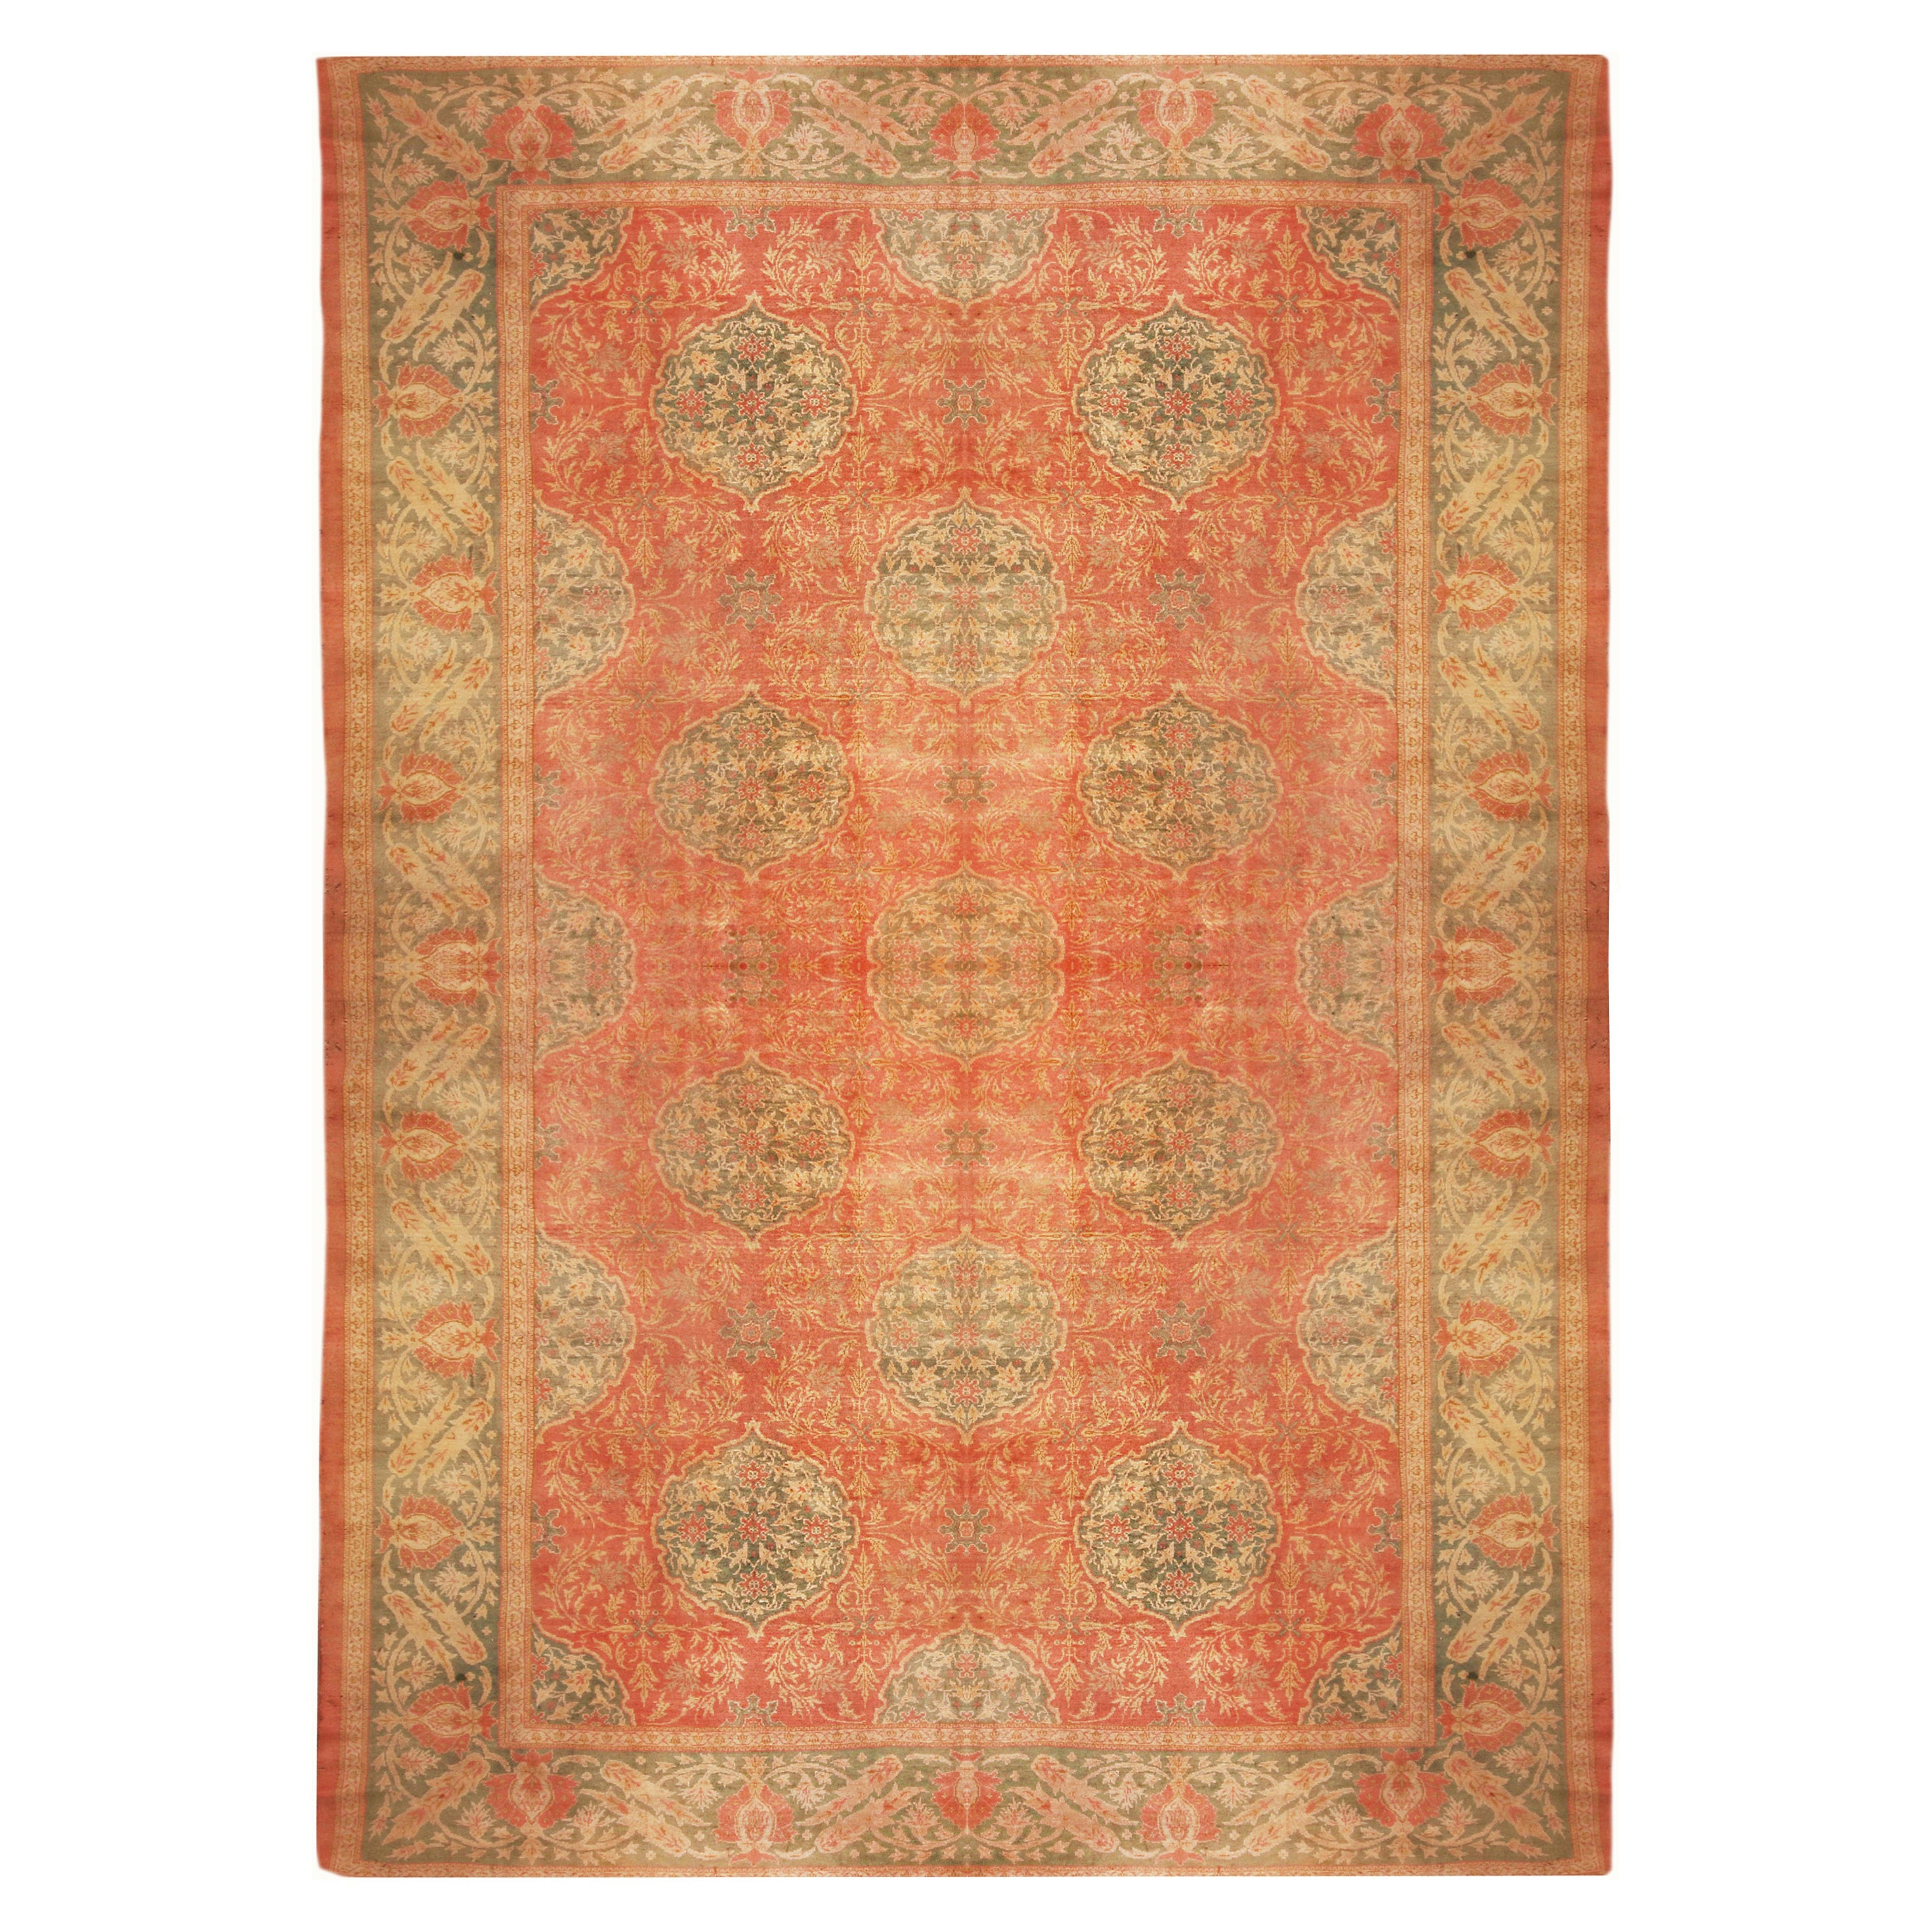 Hand Knotted Antique Oushak Rug in Red and Green Floral Pattern